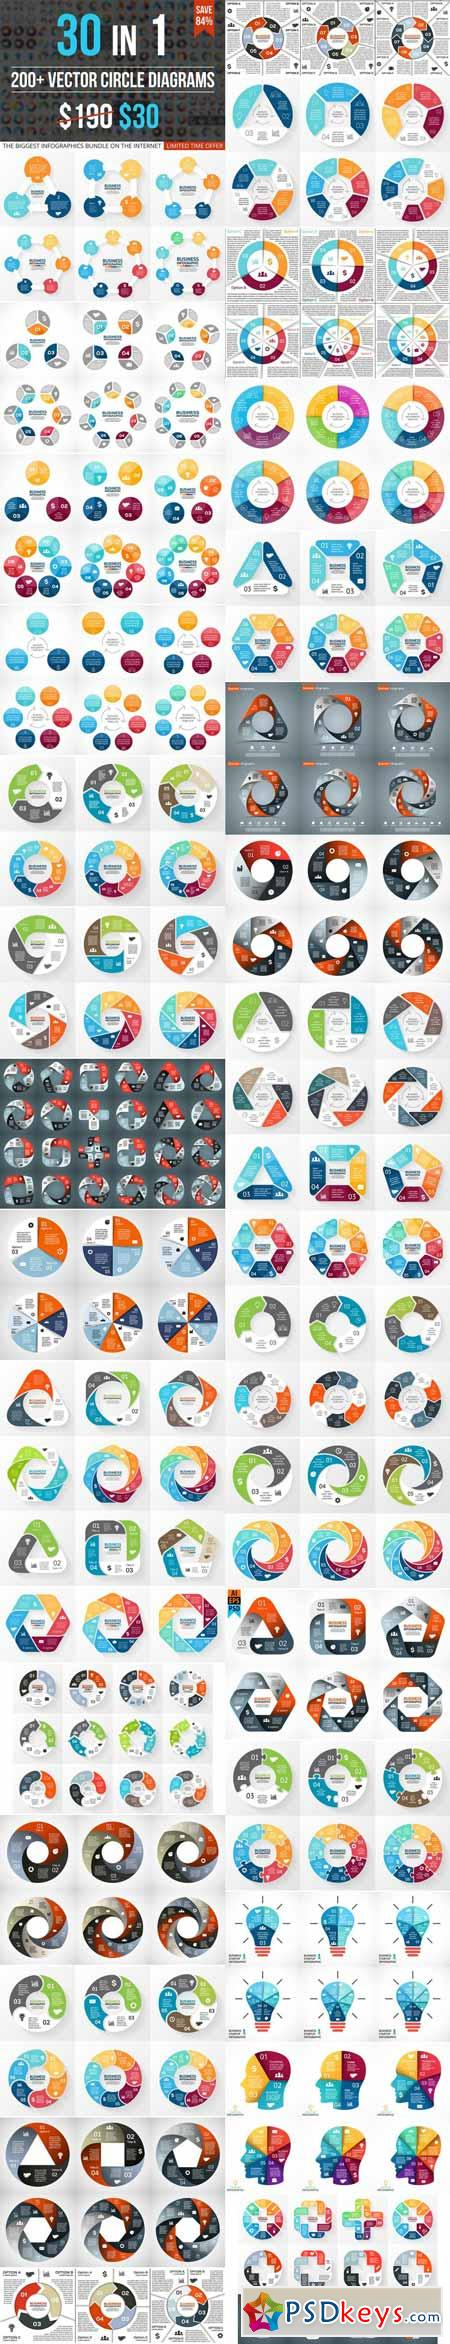 Circle Diagrams For Infographics 400216